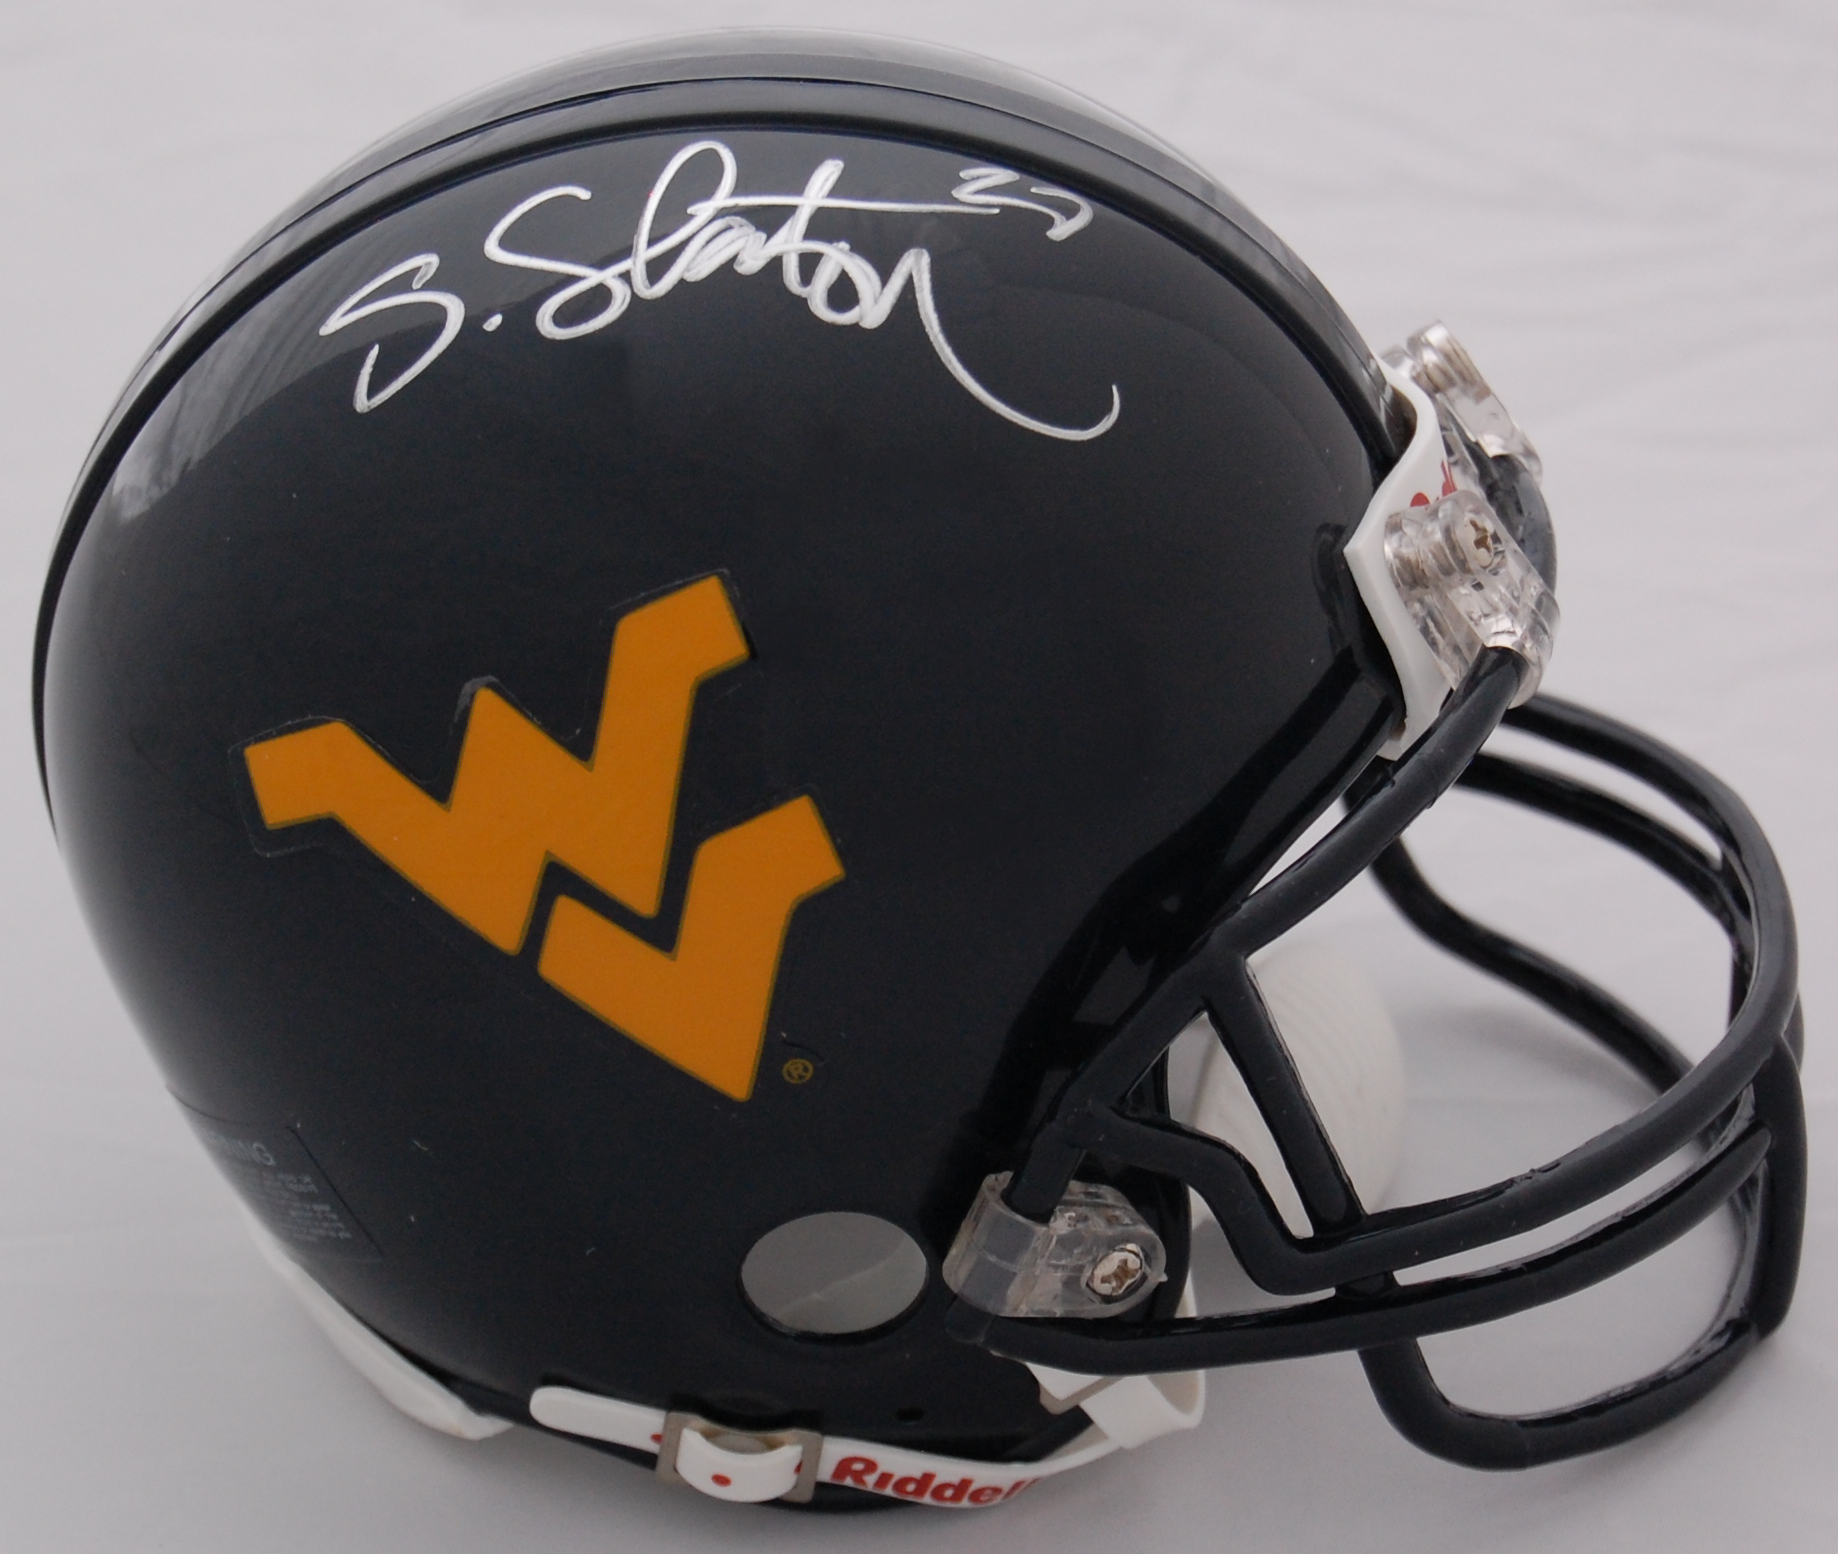 Steve Slaton West Virginia Mountaineers Autographed Mini Helmet